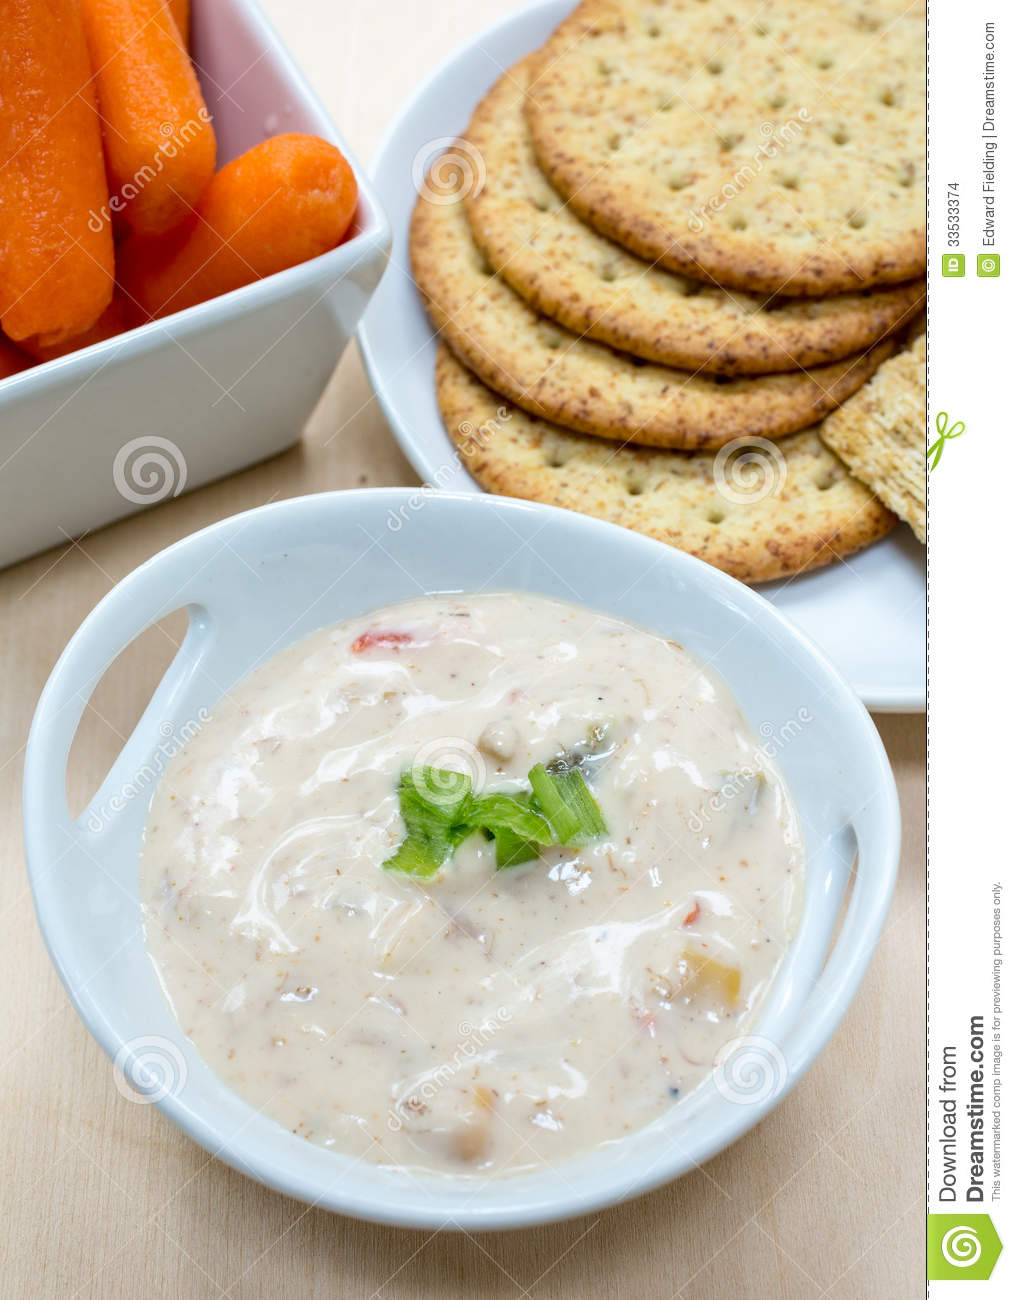 Creamy Crab Dip Surrounded By Vegetables And Crackers At A Party